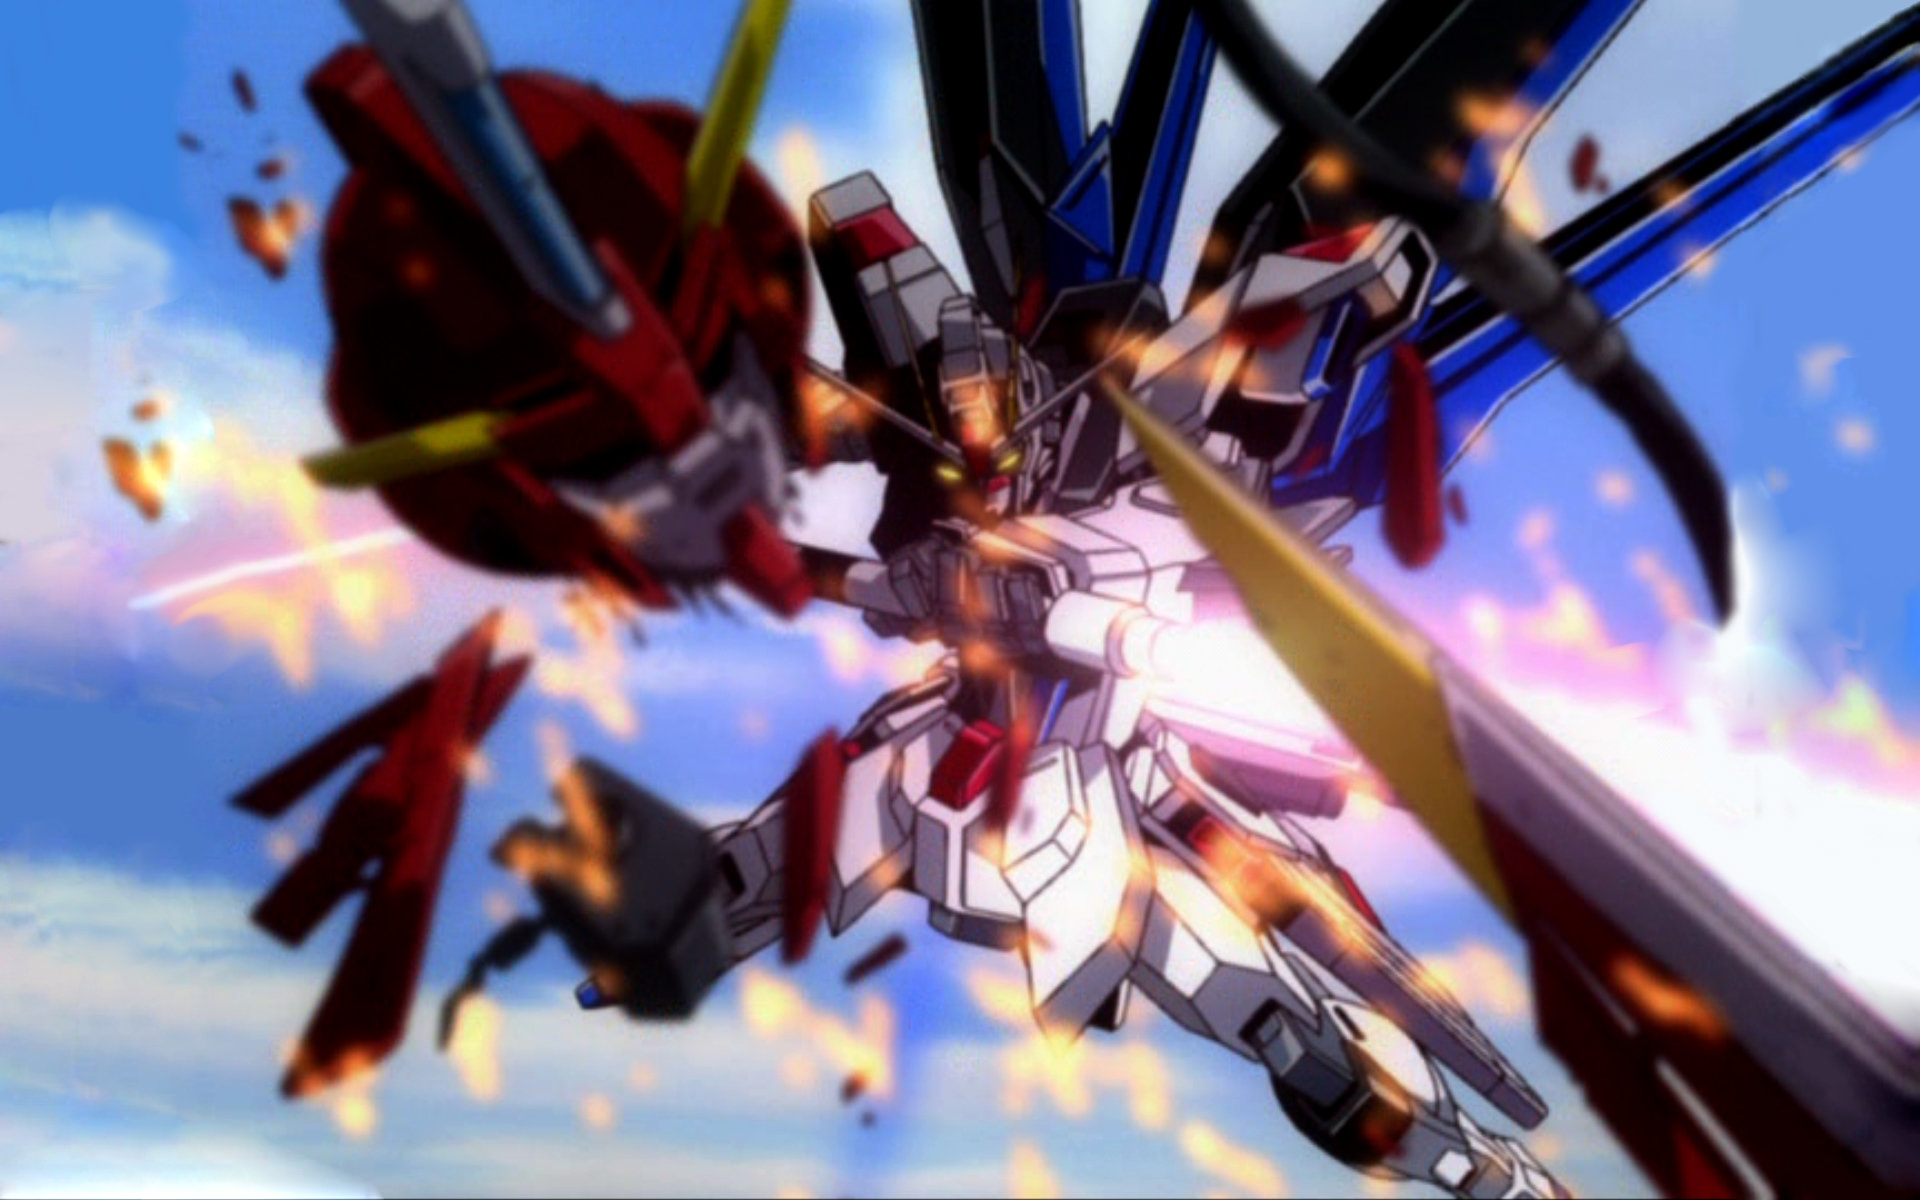 1920x1200 - Mobile Suit Gundam Seed Destiny Wallpapers 15